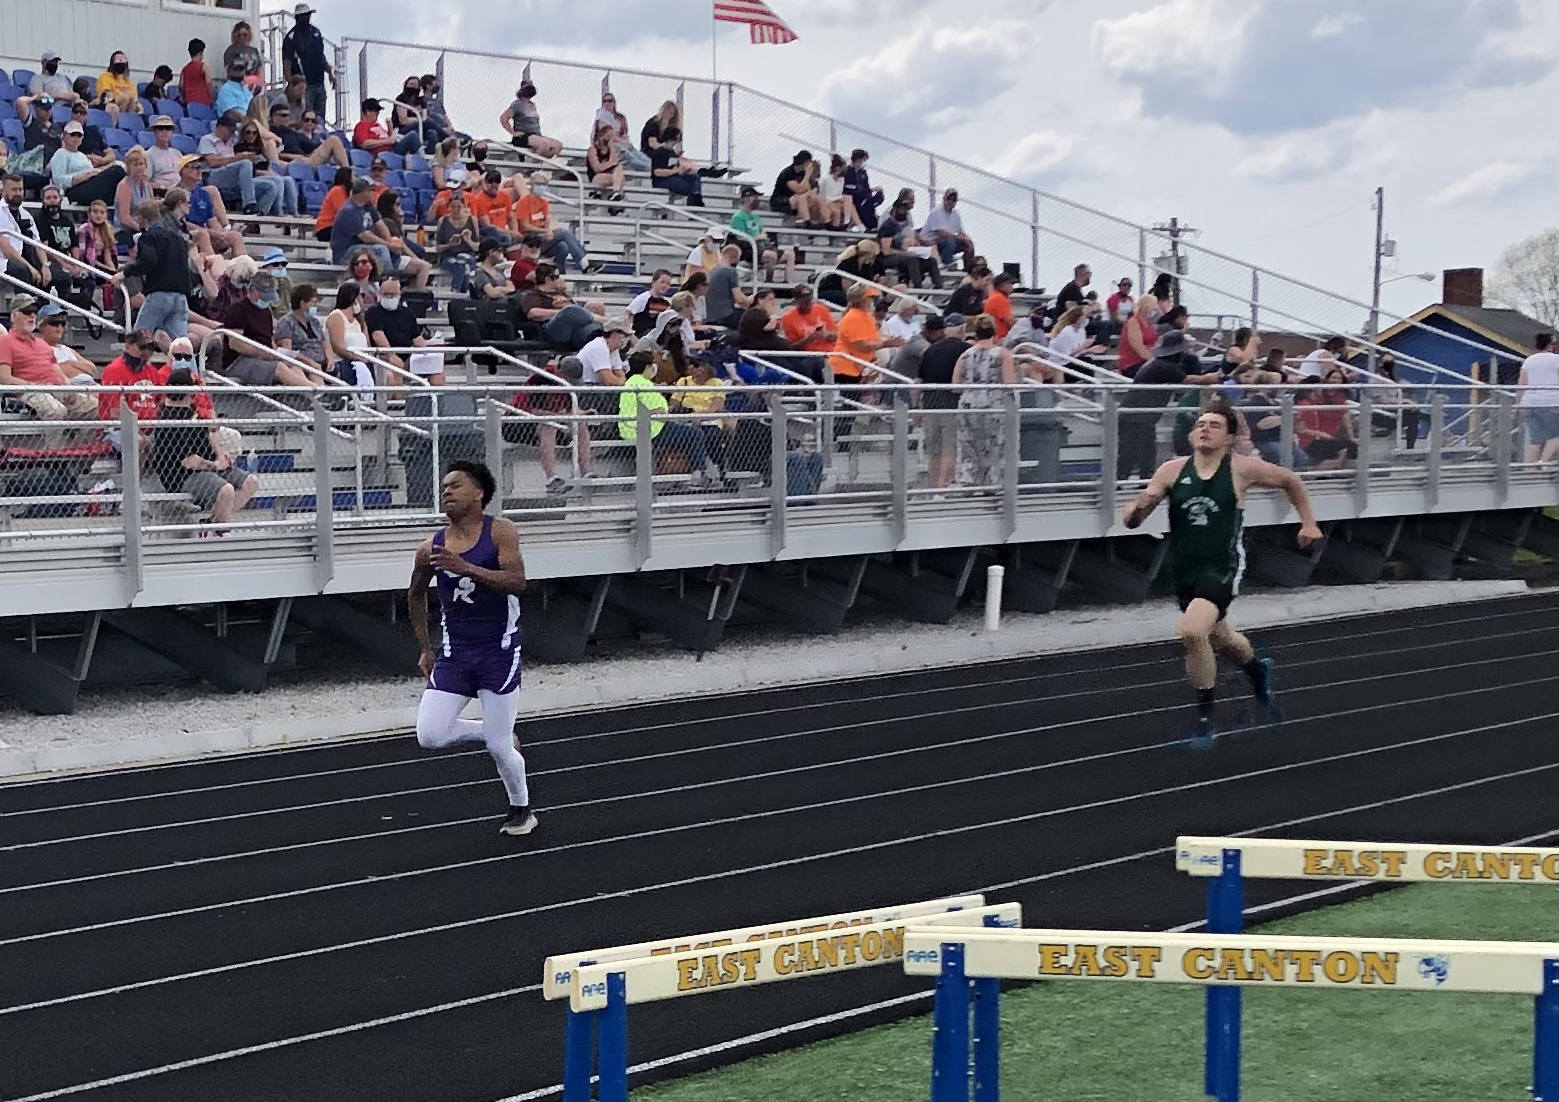 Short Handed Track Team Gives All at East Canton Invitational